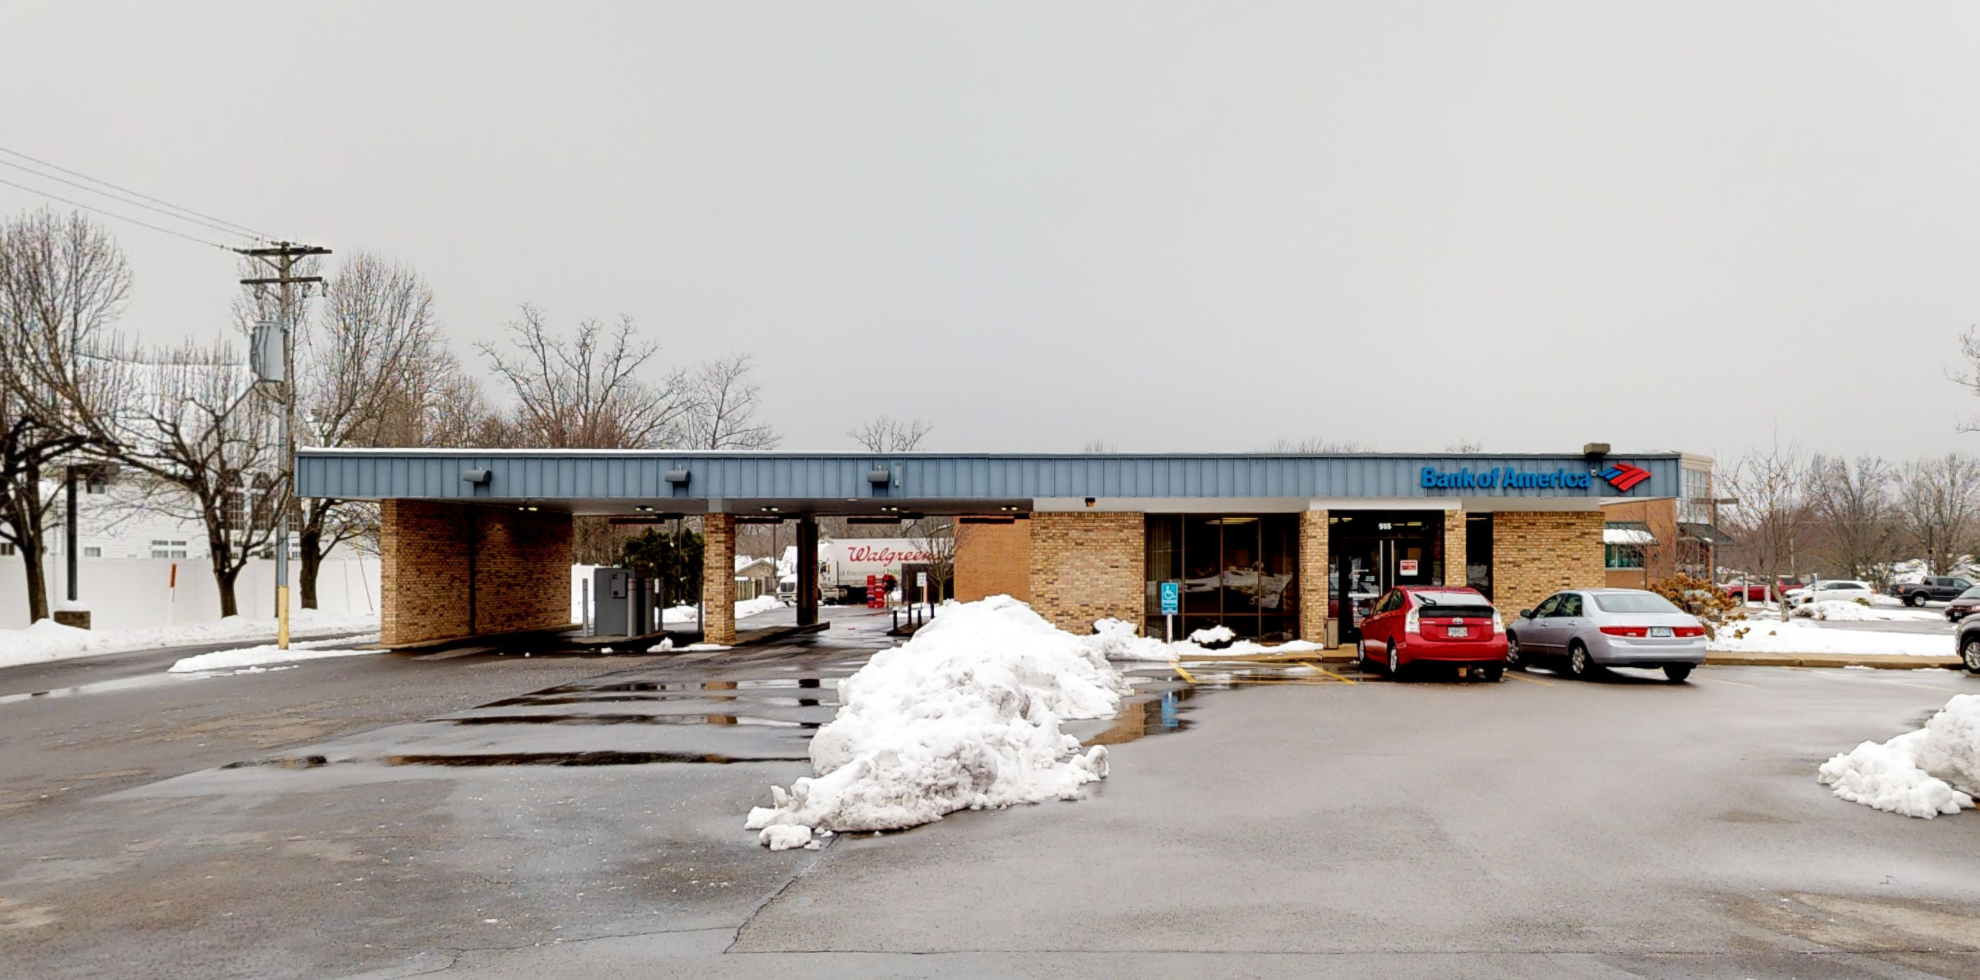 Bank of America financial center with drive-thru ATM | 505 Baxter Rd, Chesterfield, MO 63017